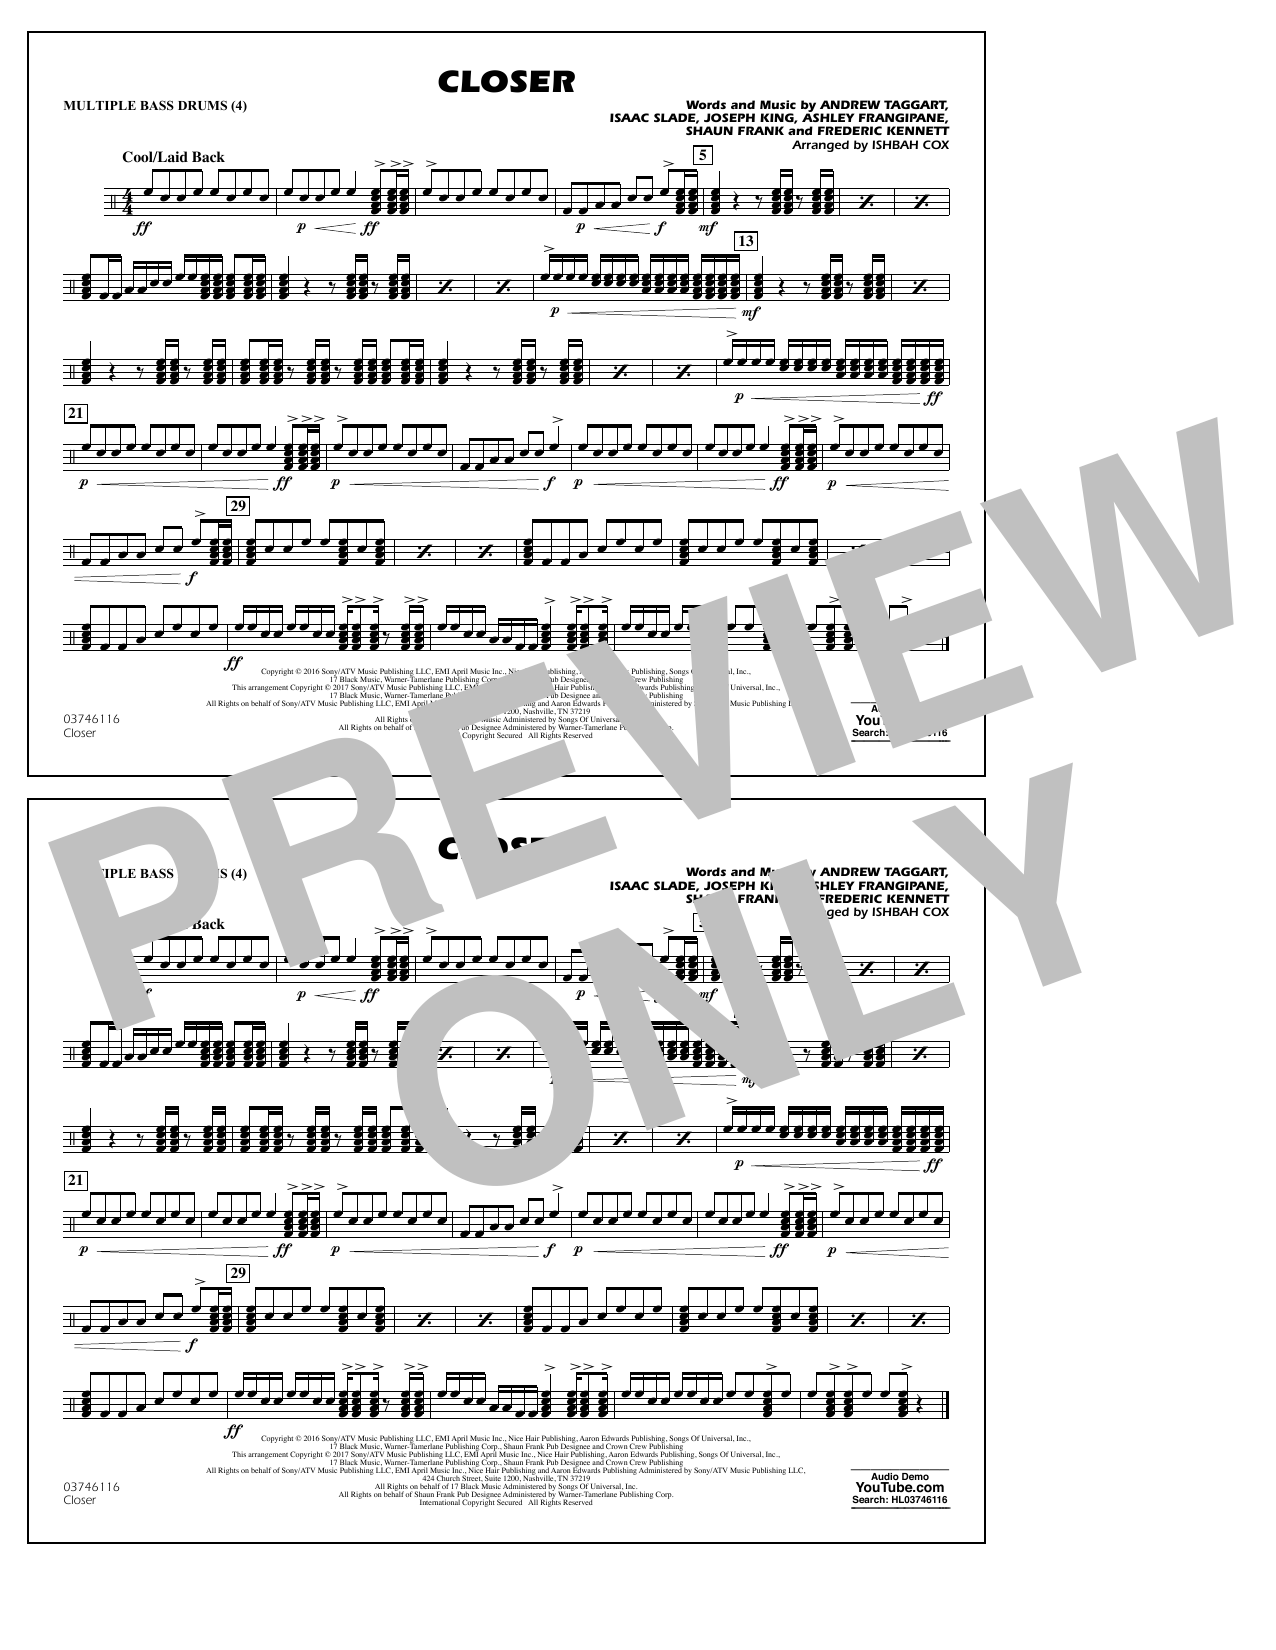 Closer - Multiple Bass Drums Sheet Music